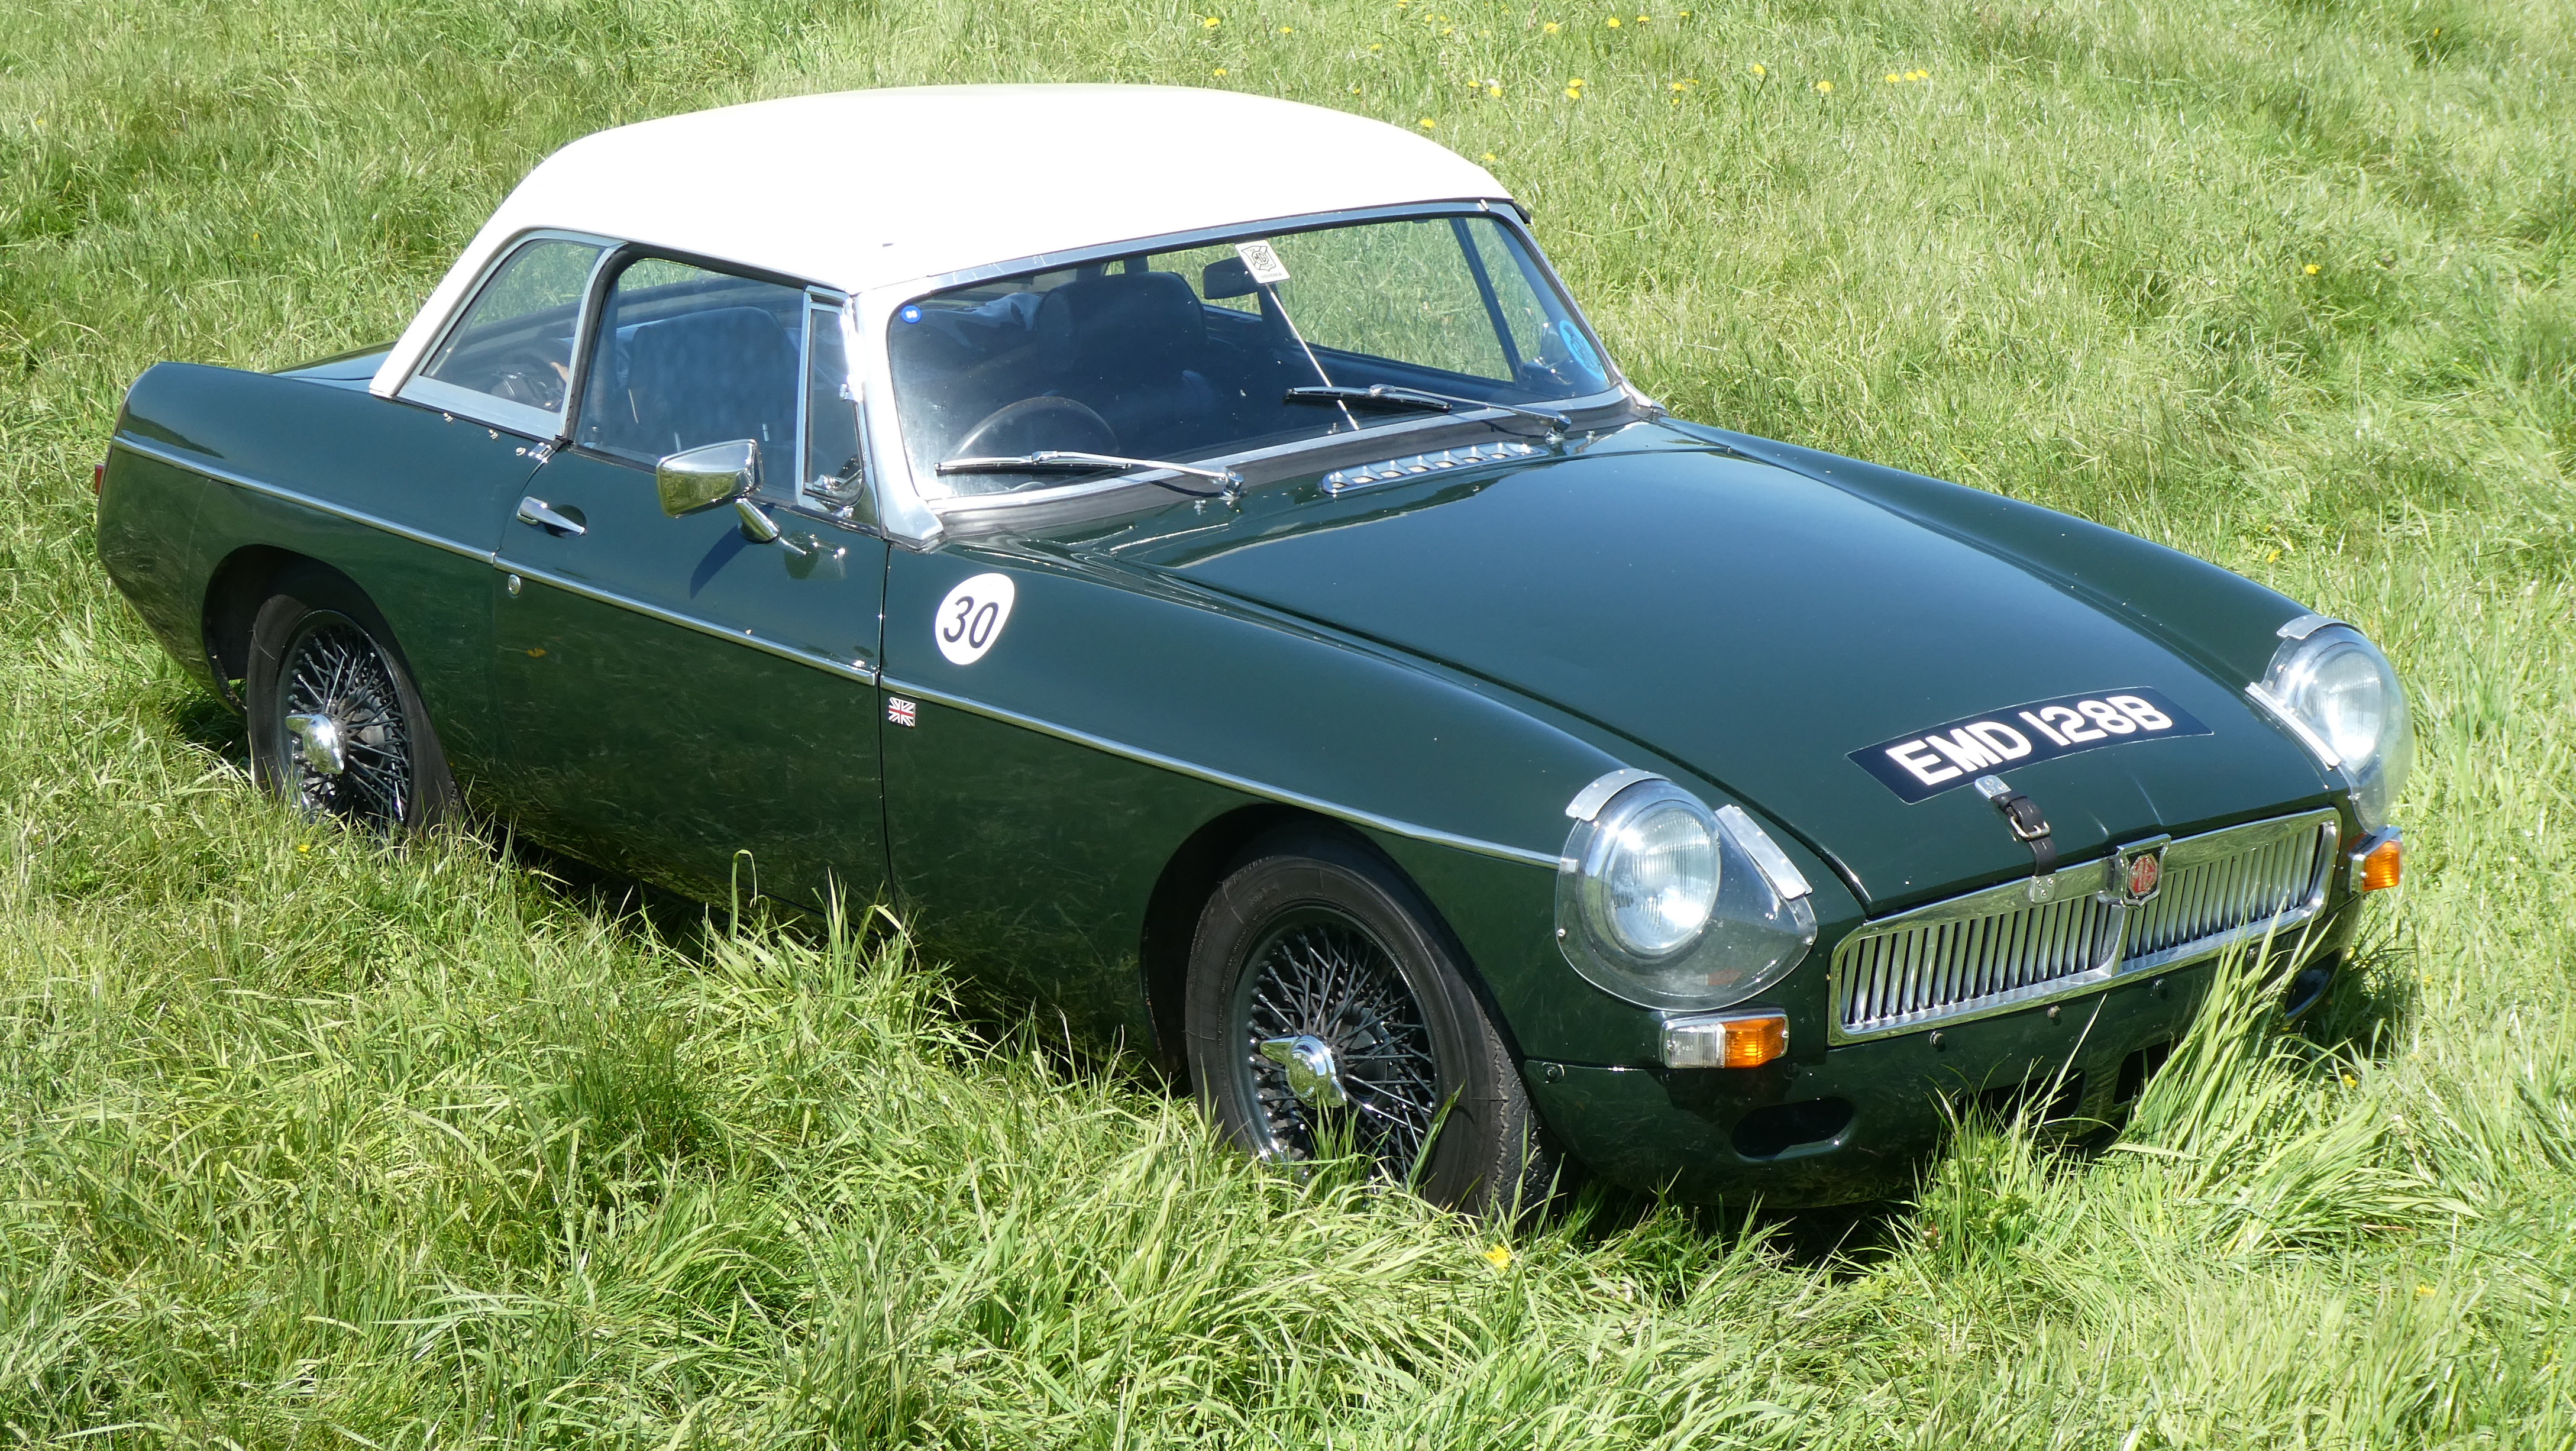 1964 MG B 'Fast Road' Car for sale